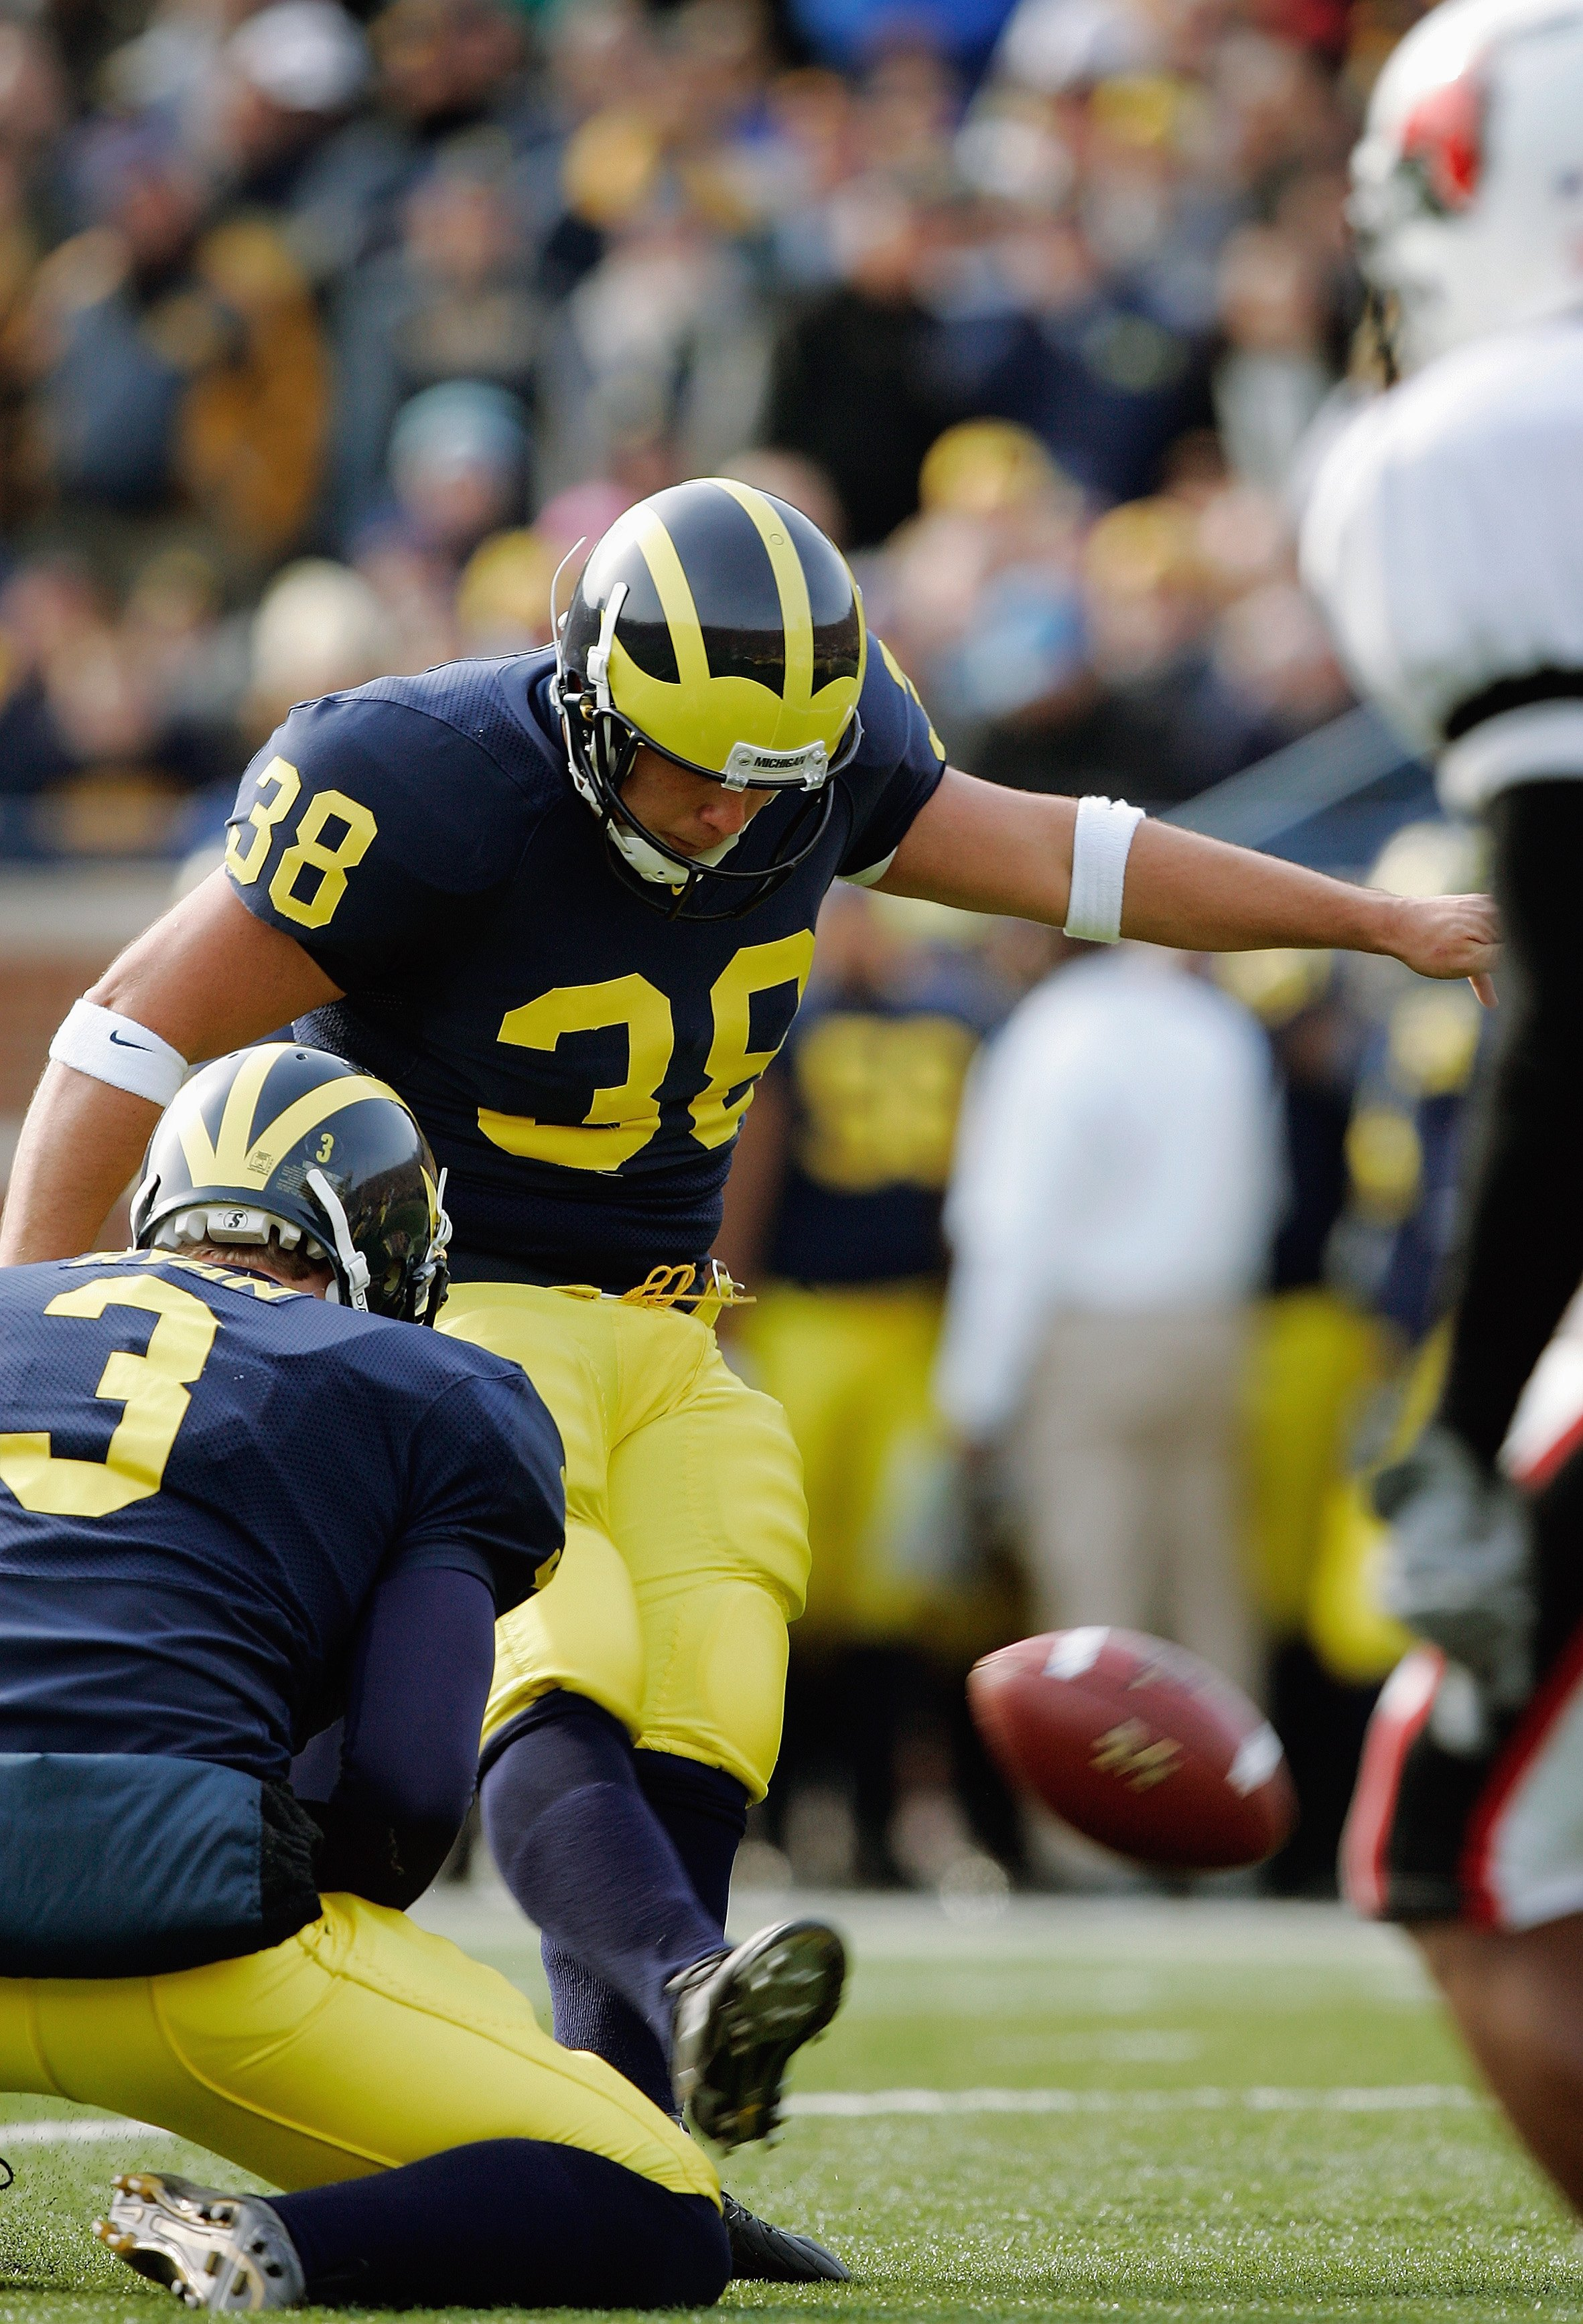 ANN ARBOR, MI - NOVEMBER 4:  Garrett Rivas #38 of the Michigan Wolverines kicks from holder Ross Ryan #3 during the NCAA game against the Ball State Cardinals on November 4, 2006 at Michigan Stadium in Ann Arbor, Michigan. Michigan won 34-26. (Photo by Br